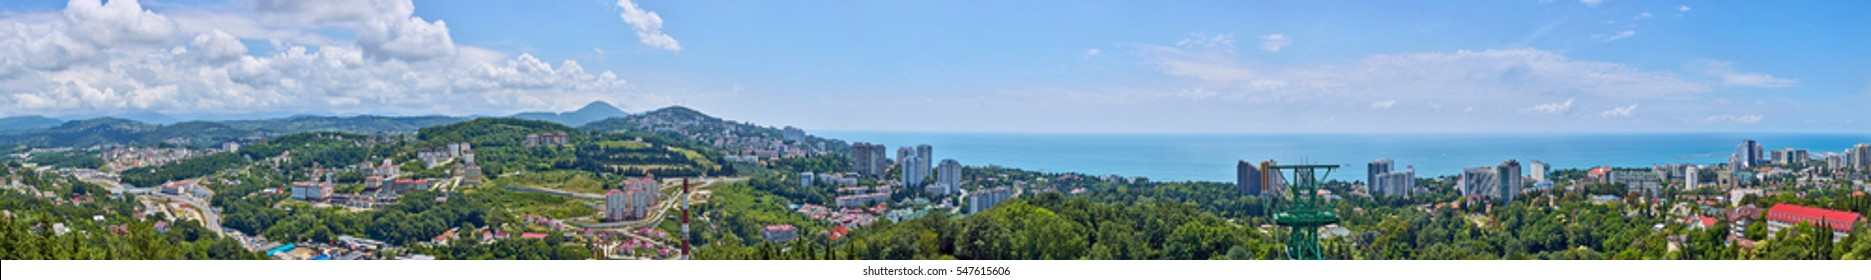 Wide angle panorama of blue coast of Black Sea in Sochi with houses under summer cloudy sky